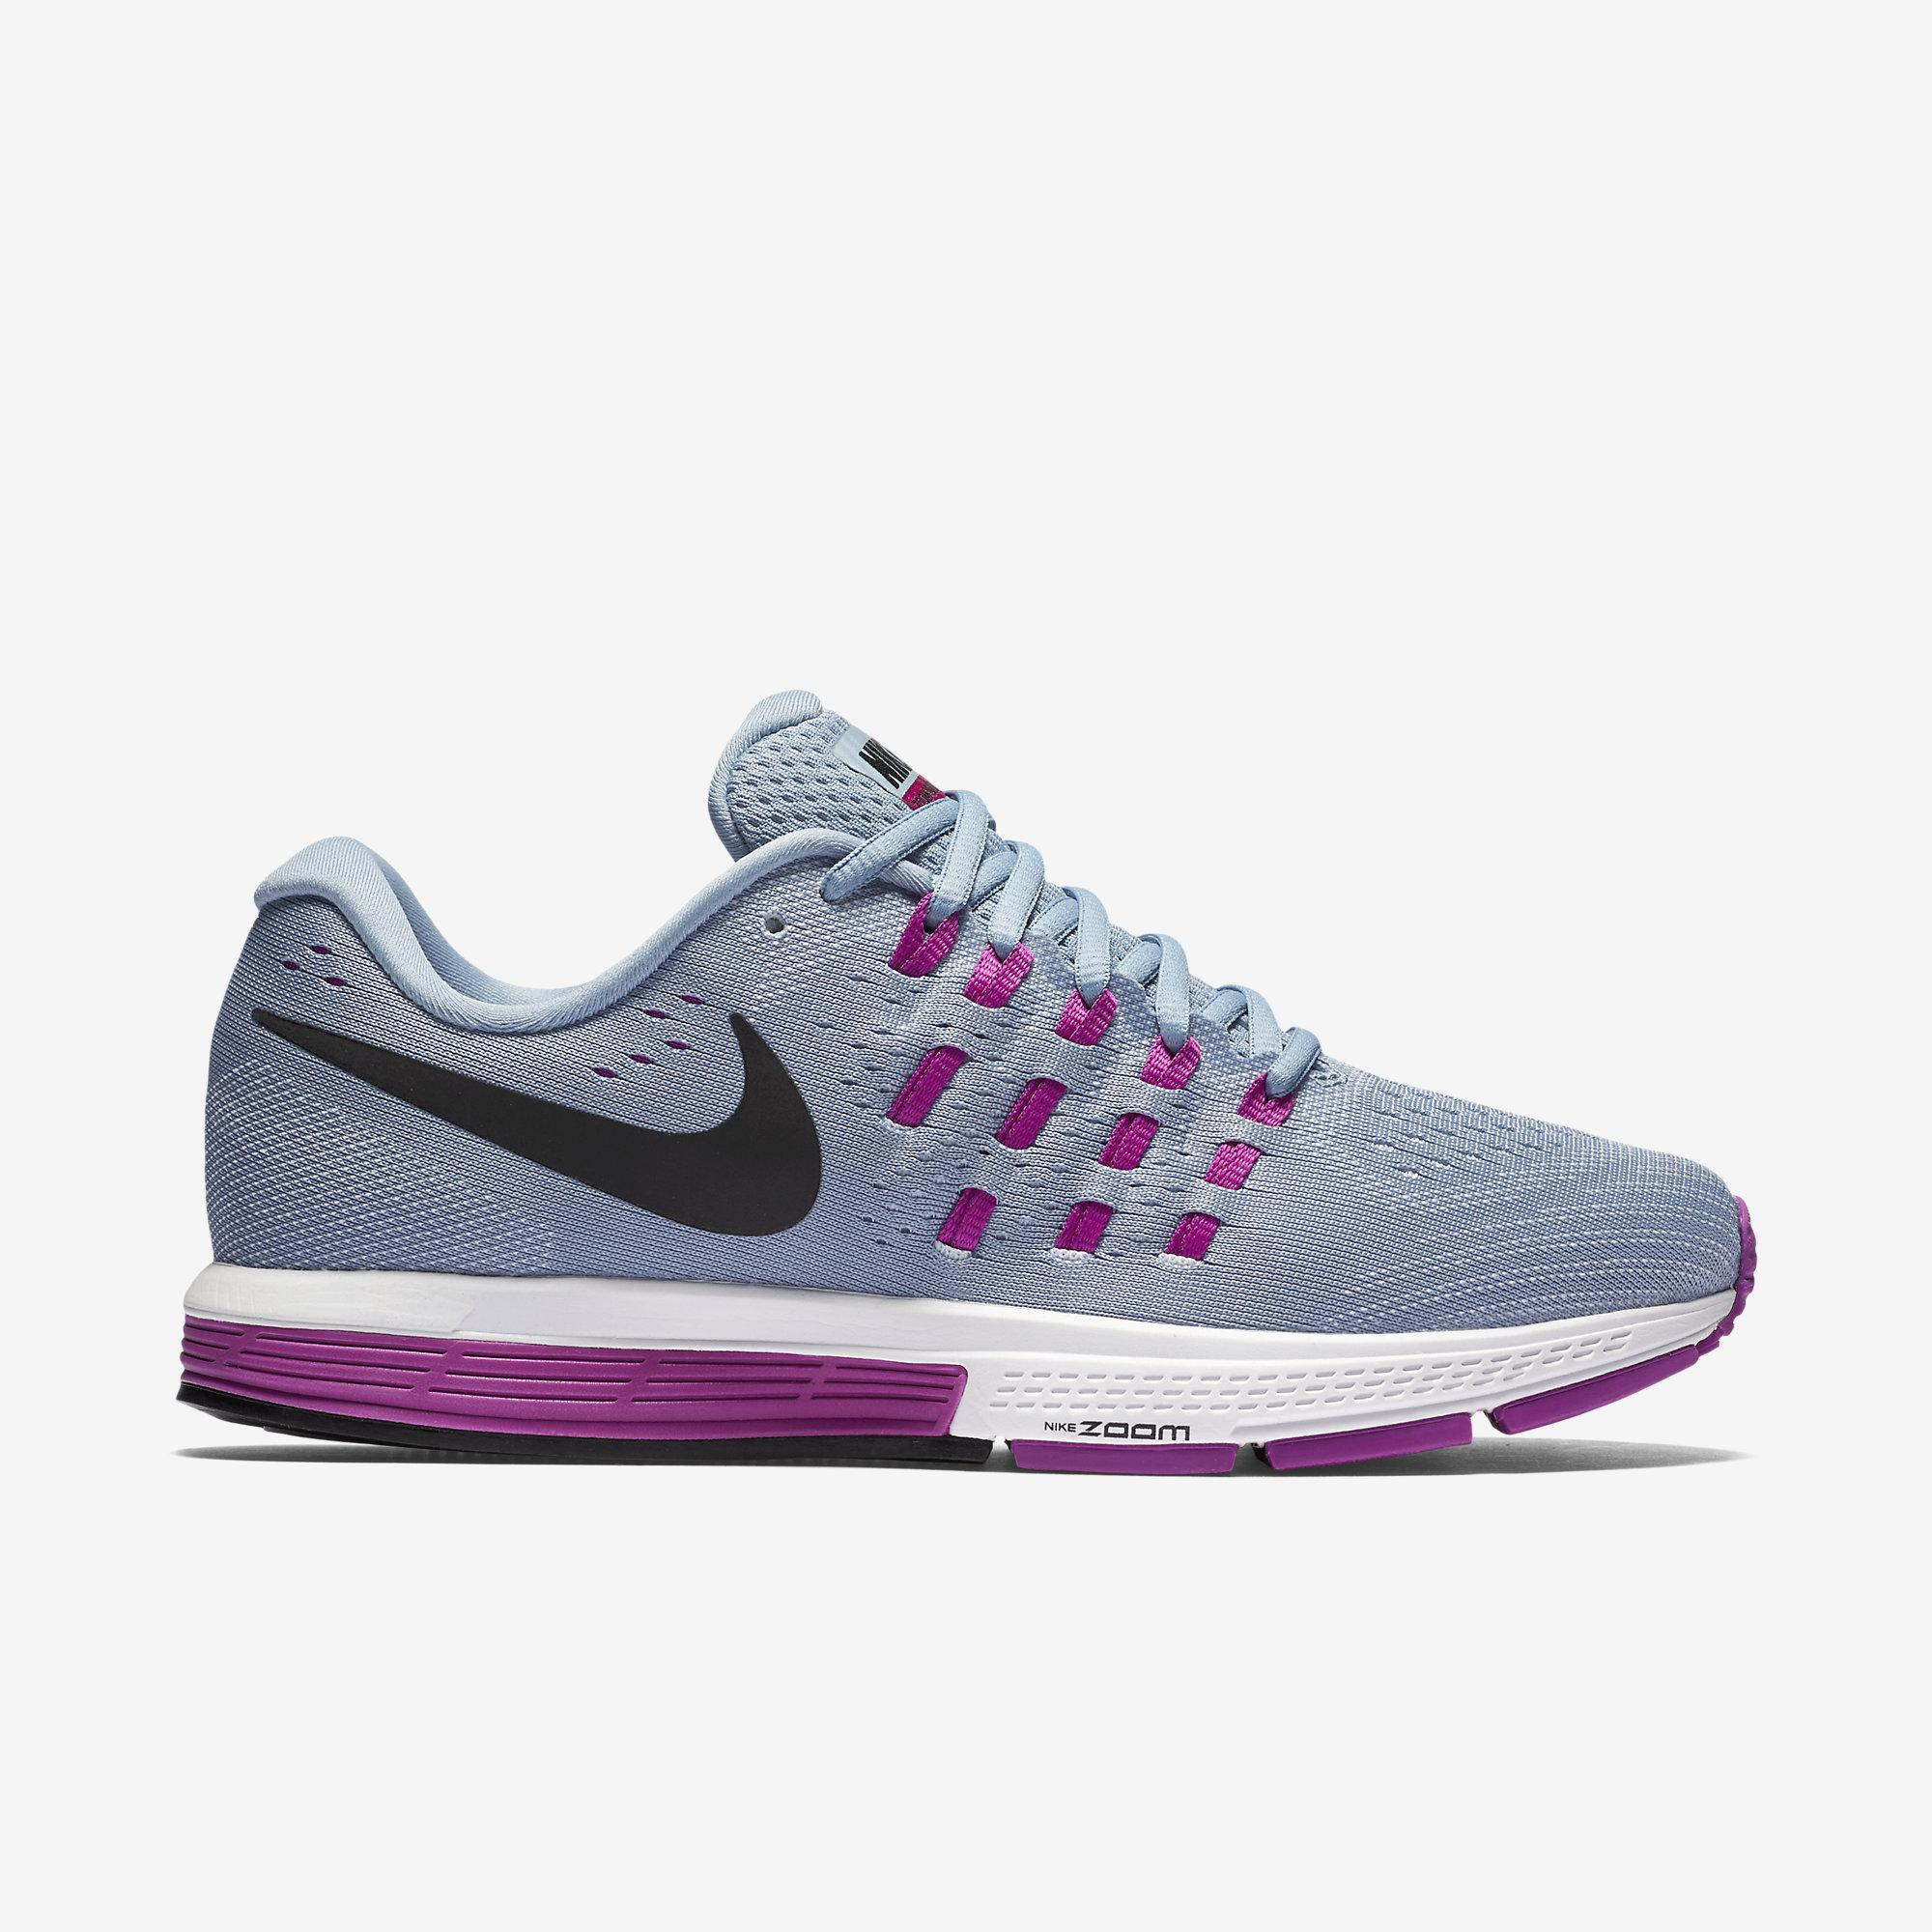 Nike Womens Air Zoom Vomero 11 Running Shoes - Grey